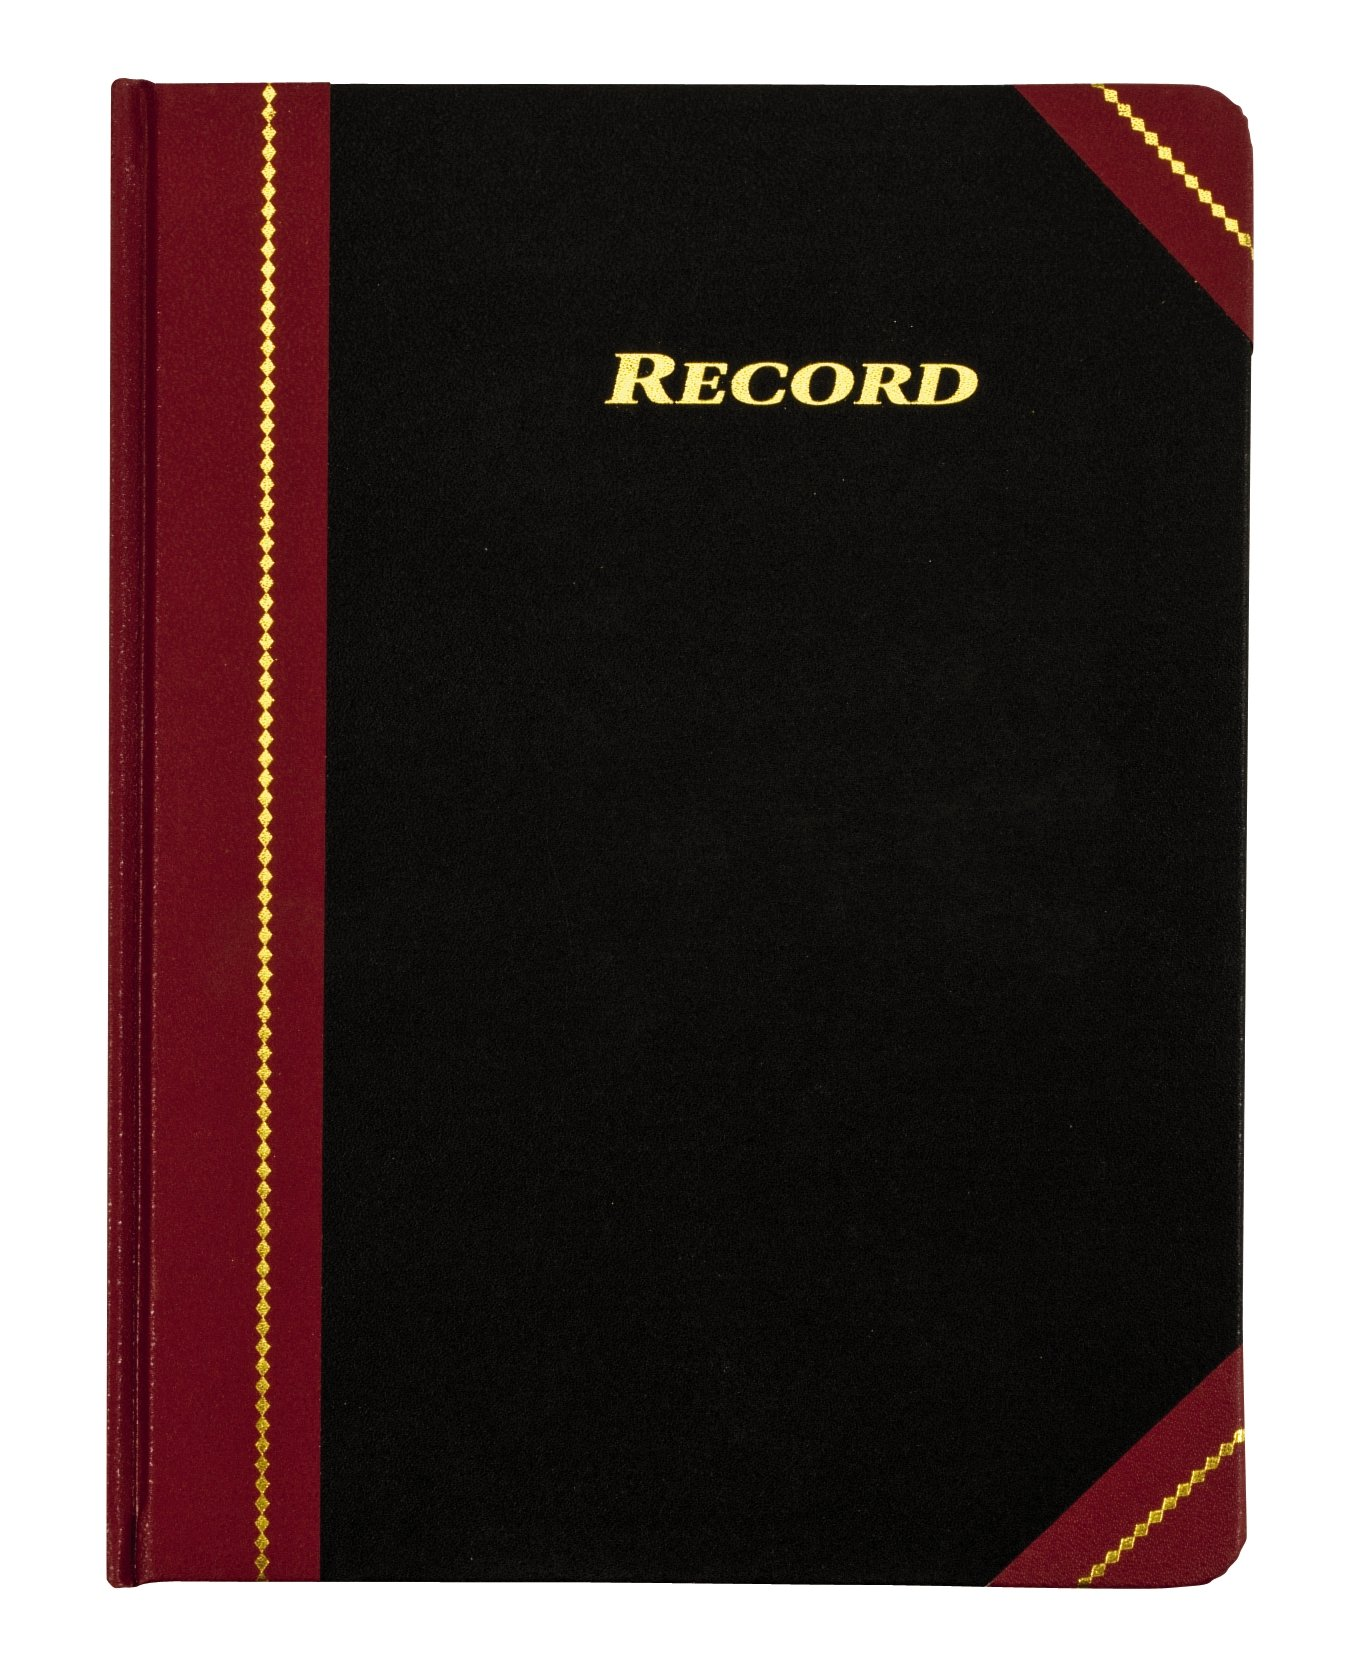 Adams Record Ledger, 8.25 x 10.75 Inches, 5 Squares per Inch, 300 Tinted Pages, Black and Maroon (ARB810R3M) by Adams